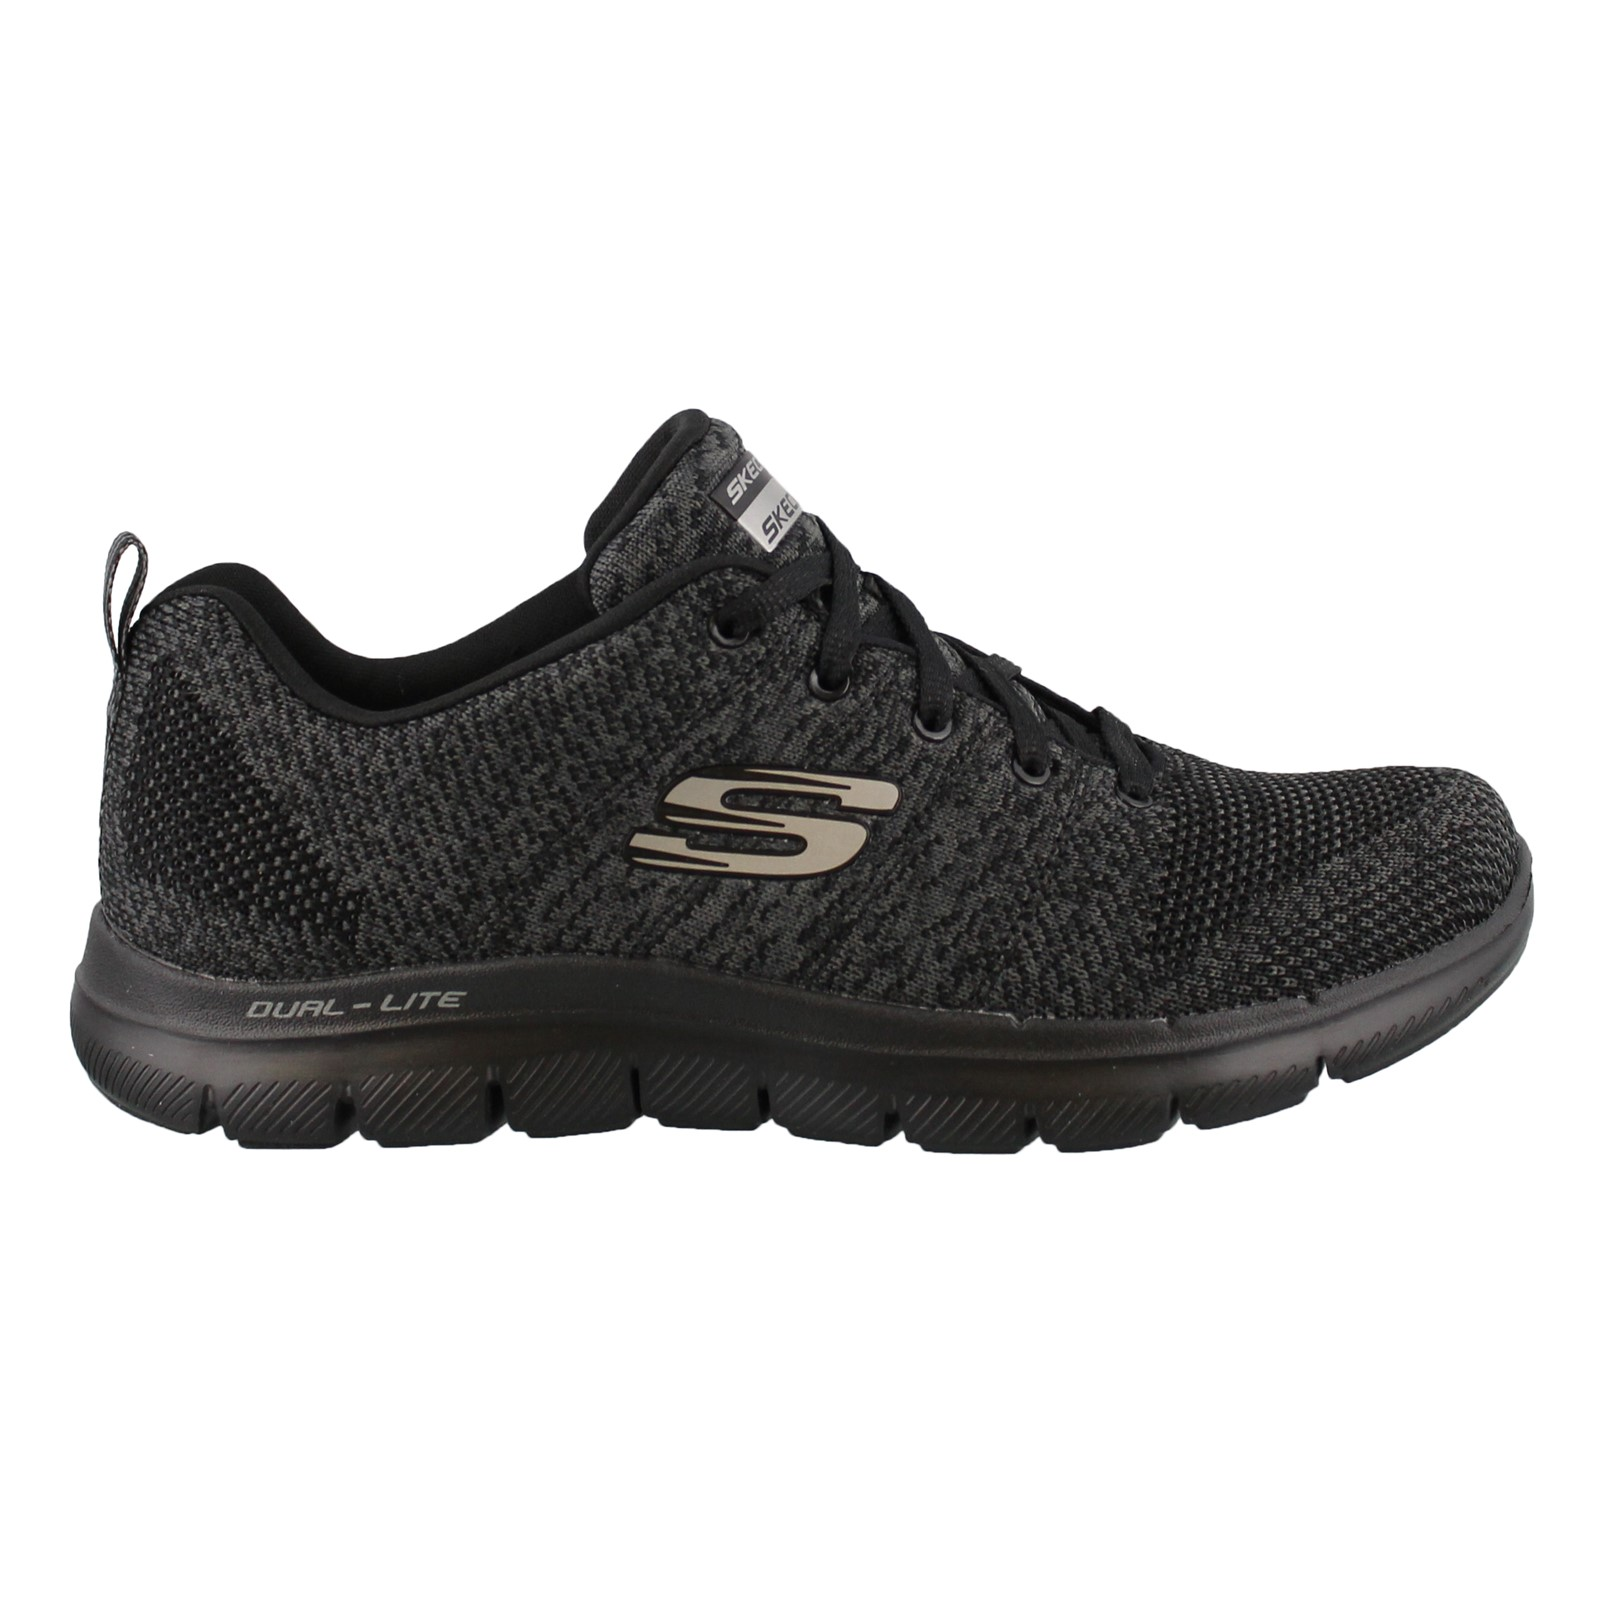 Women's Skechers, Flex Appeal 2.0 High Energy Lace up Shoes